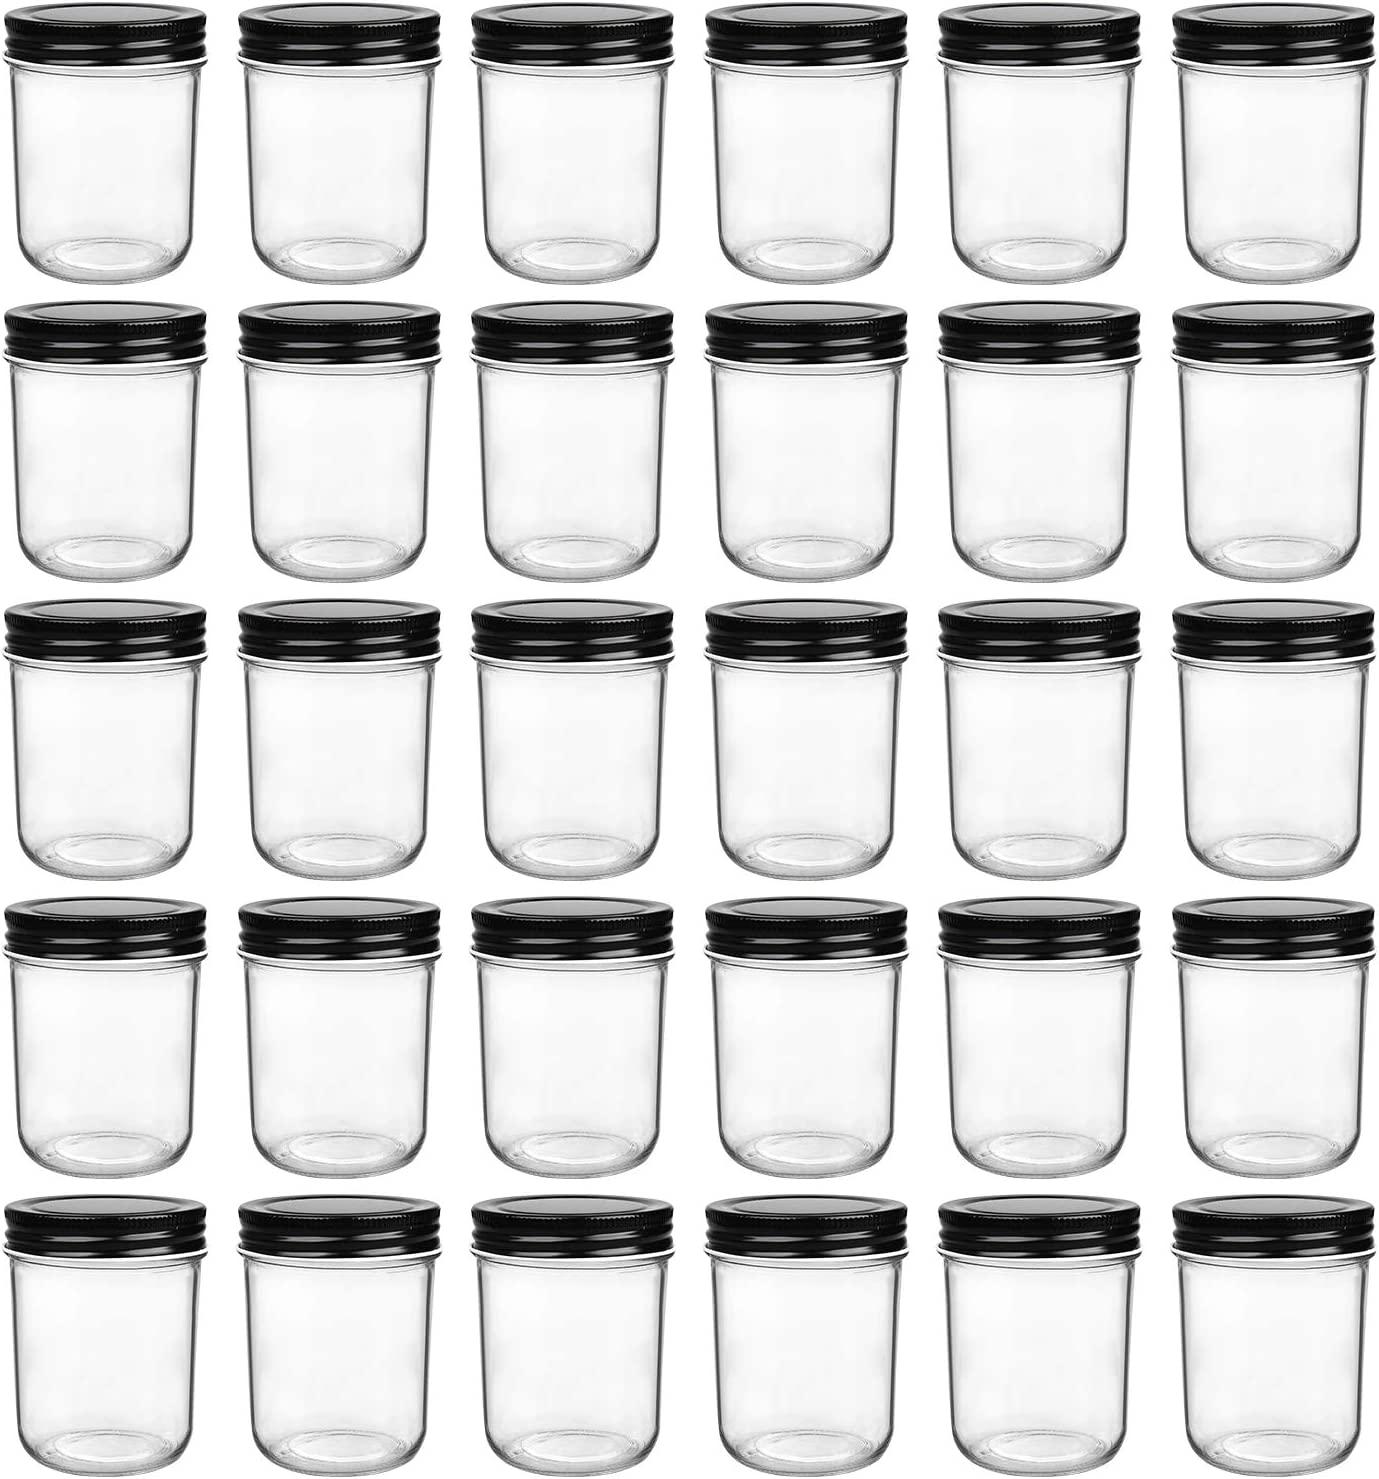 6oz Glass Jars With Lids,Small Mason Jars Wide Mouth,Mini Canning Jars With Black Lids,Kitchen Storage Jars For Honey,Jam,Jelly,Baby Foods,Wedding Favor,Shower Favors,Spice Jars Set of 30…